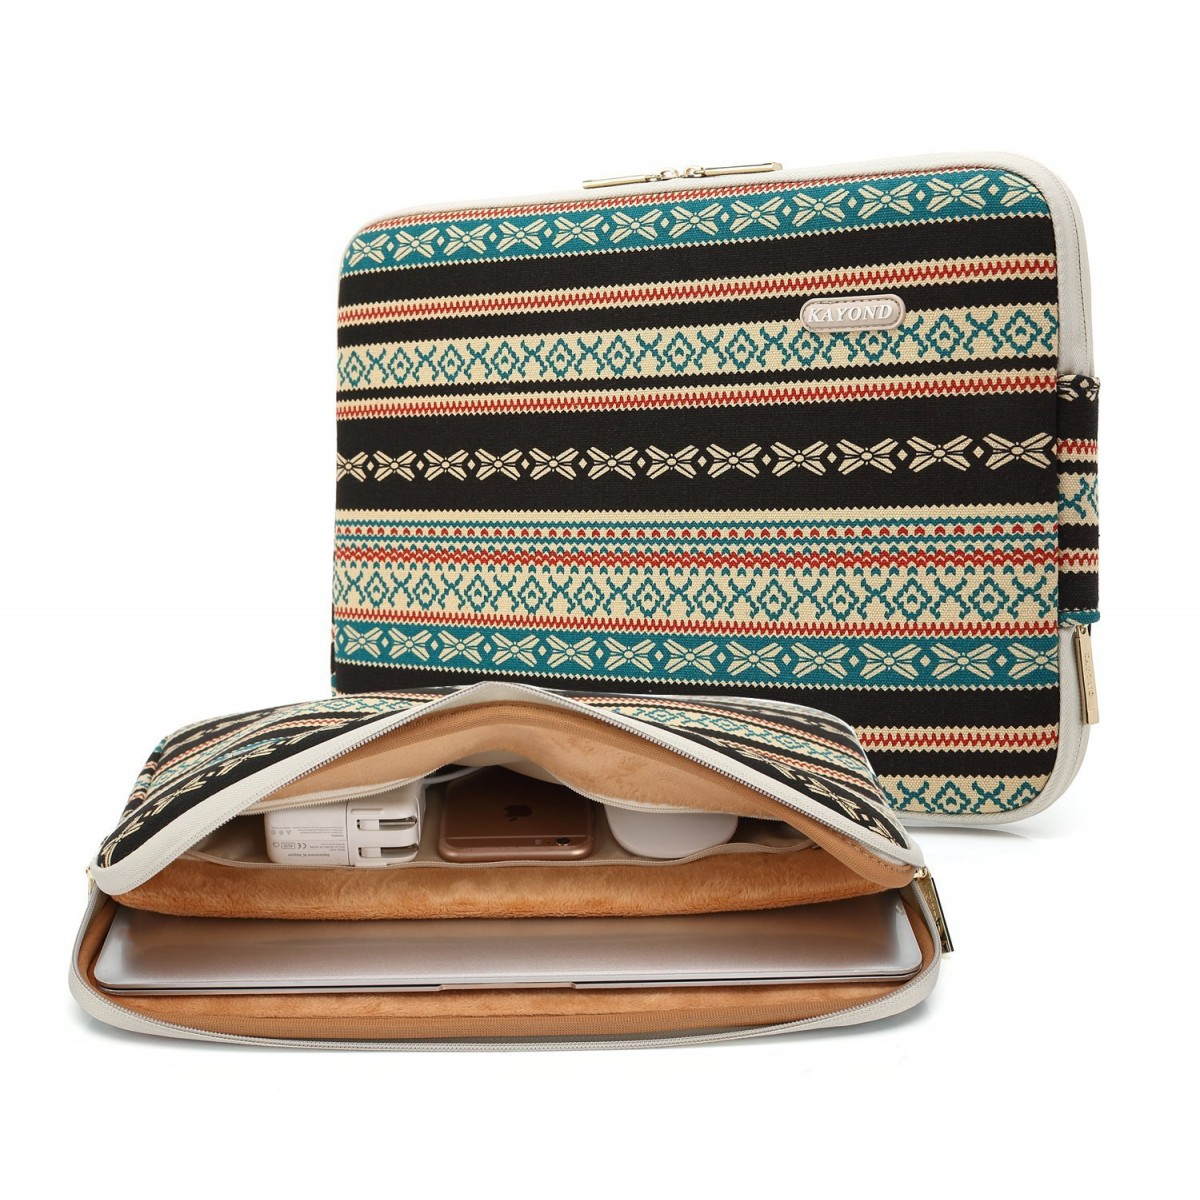 47f468dd1185 Kayond Bohemian Water-resistant Canvas Fabric 15-15.6 Inch laptop Sleeve  Case Bag For Notebook Computer / MacBook / Macbook Air/MacBook Pro (15-15.6  ...